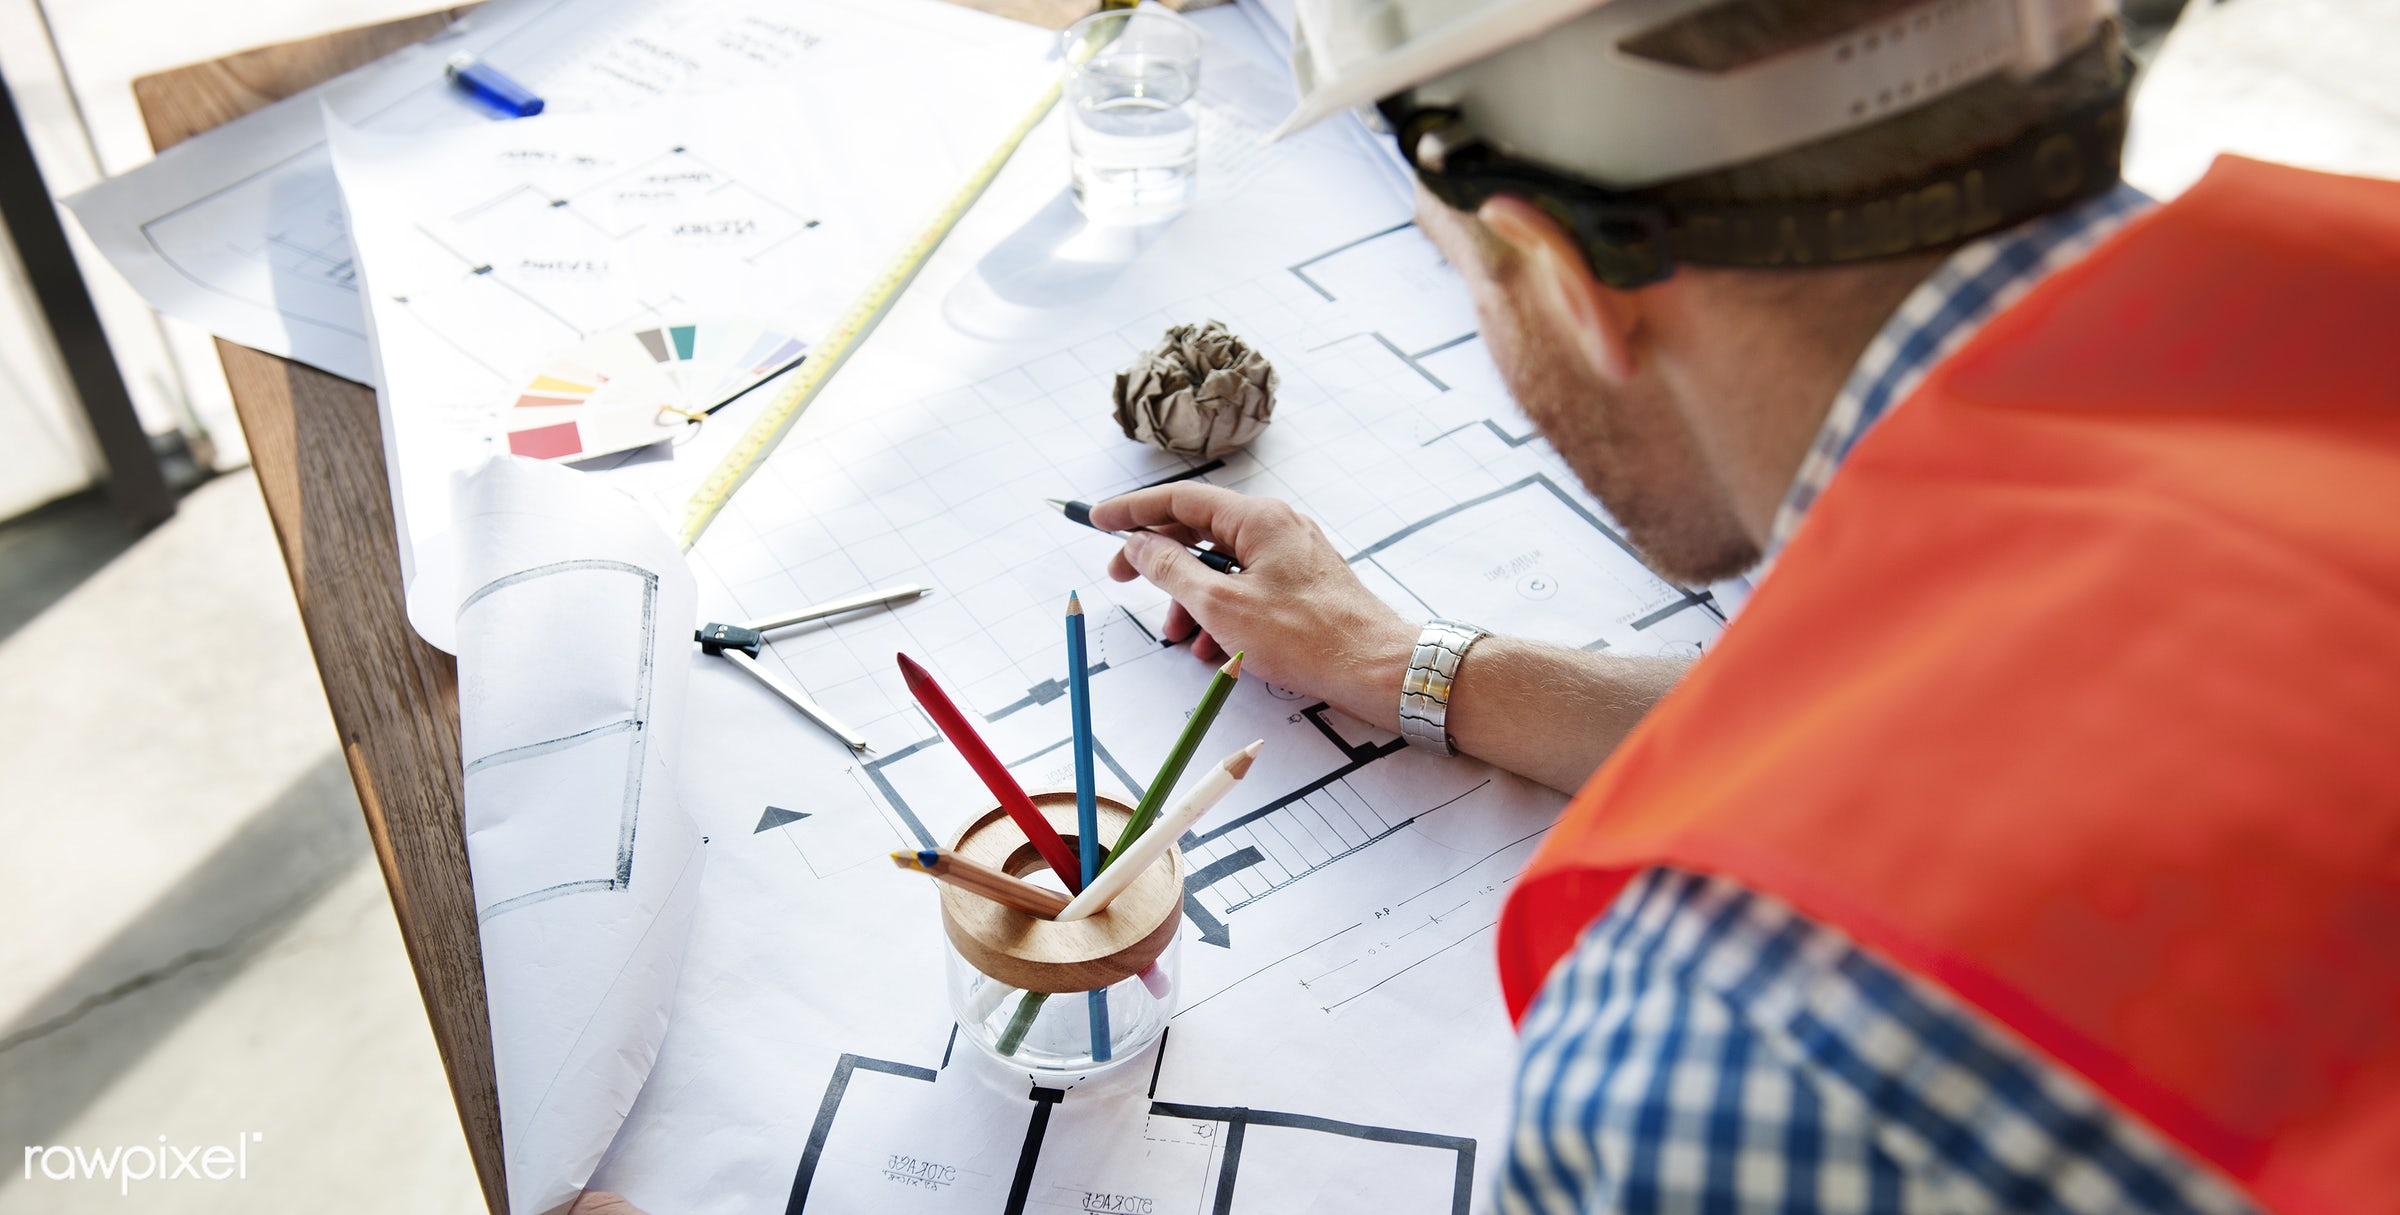 architect, architecture, blue print, board, building, construction, designer, discussion, engineering, man, meeting, office...